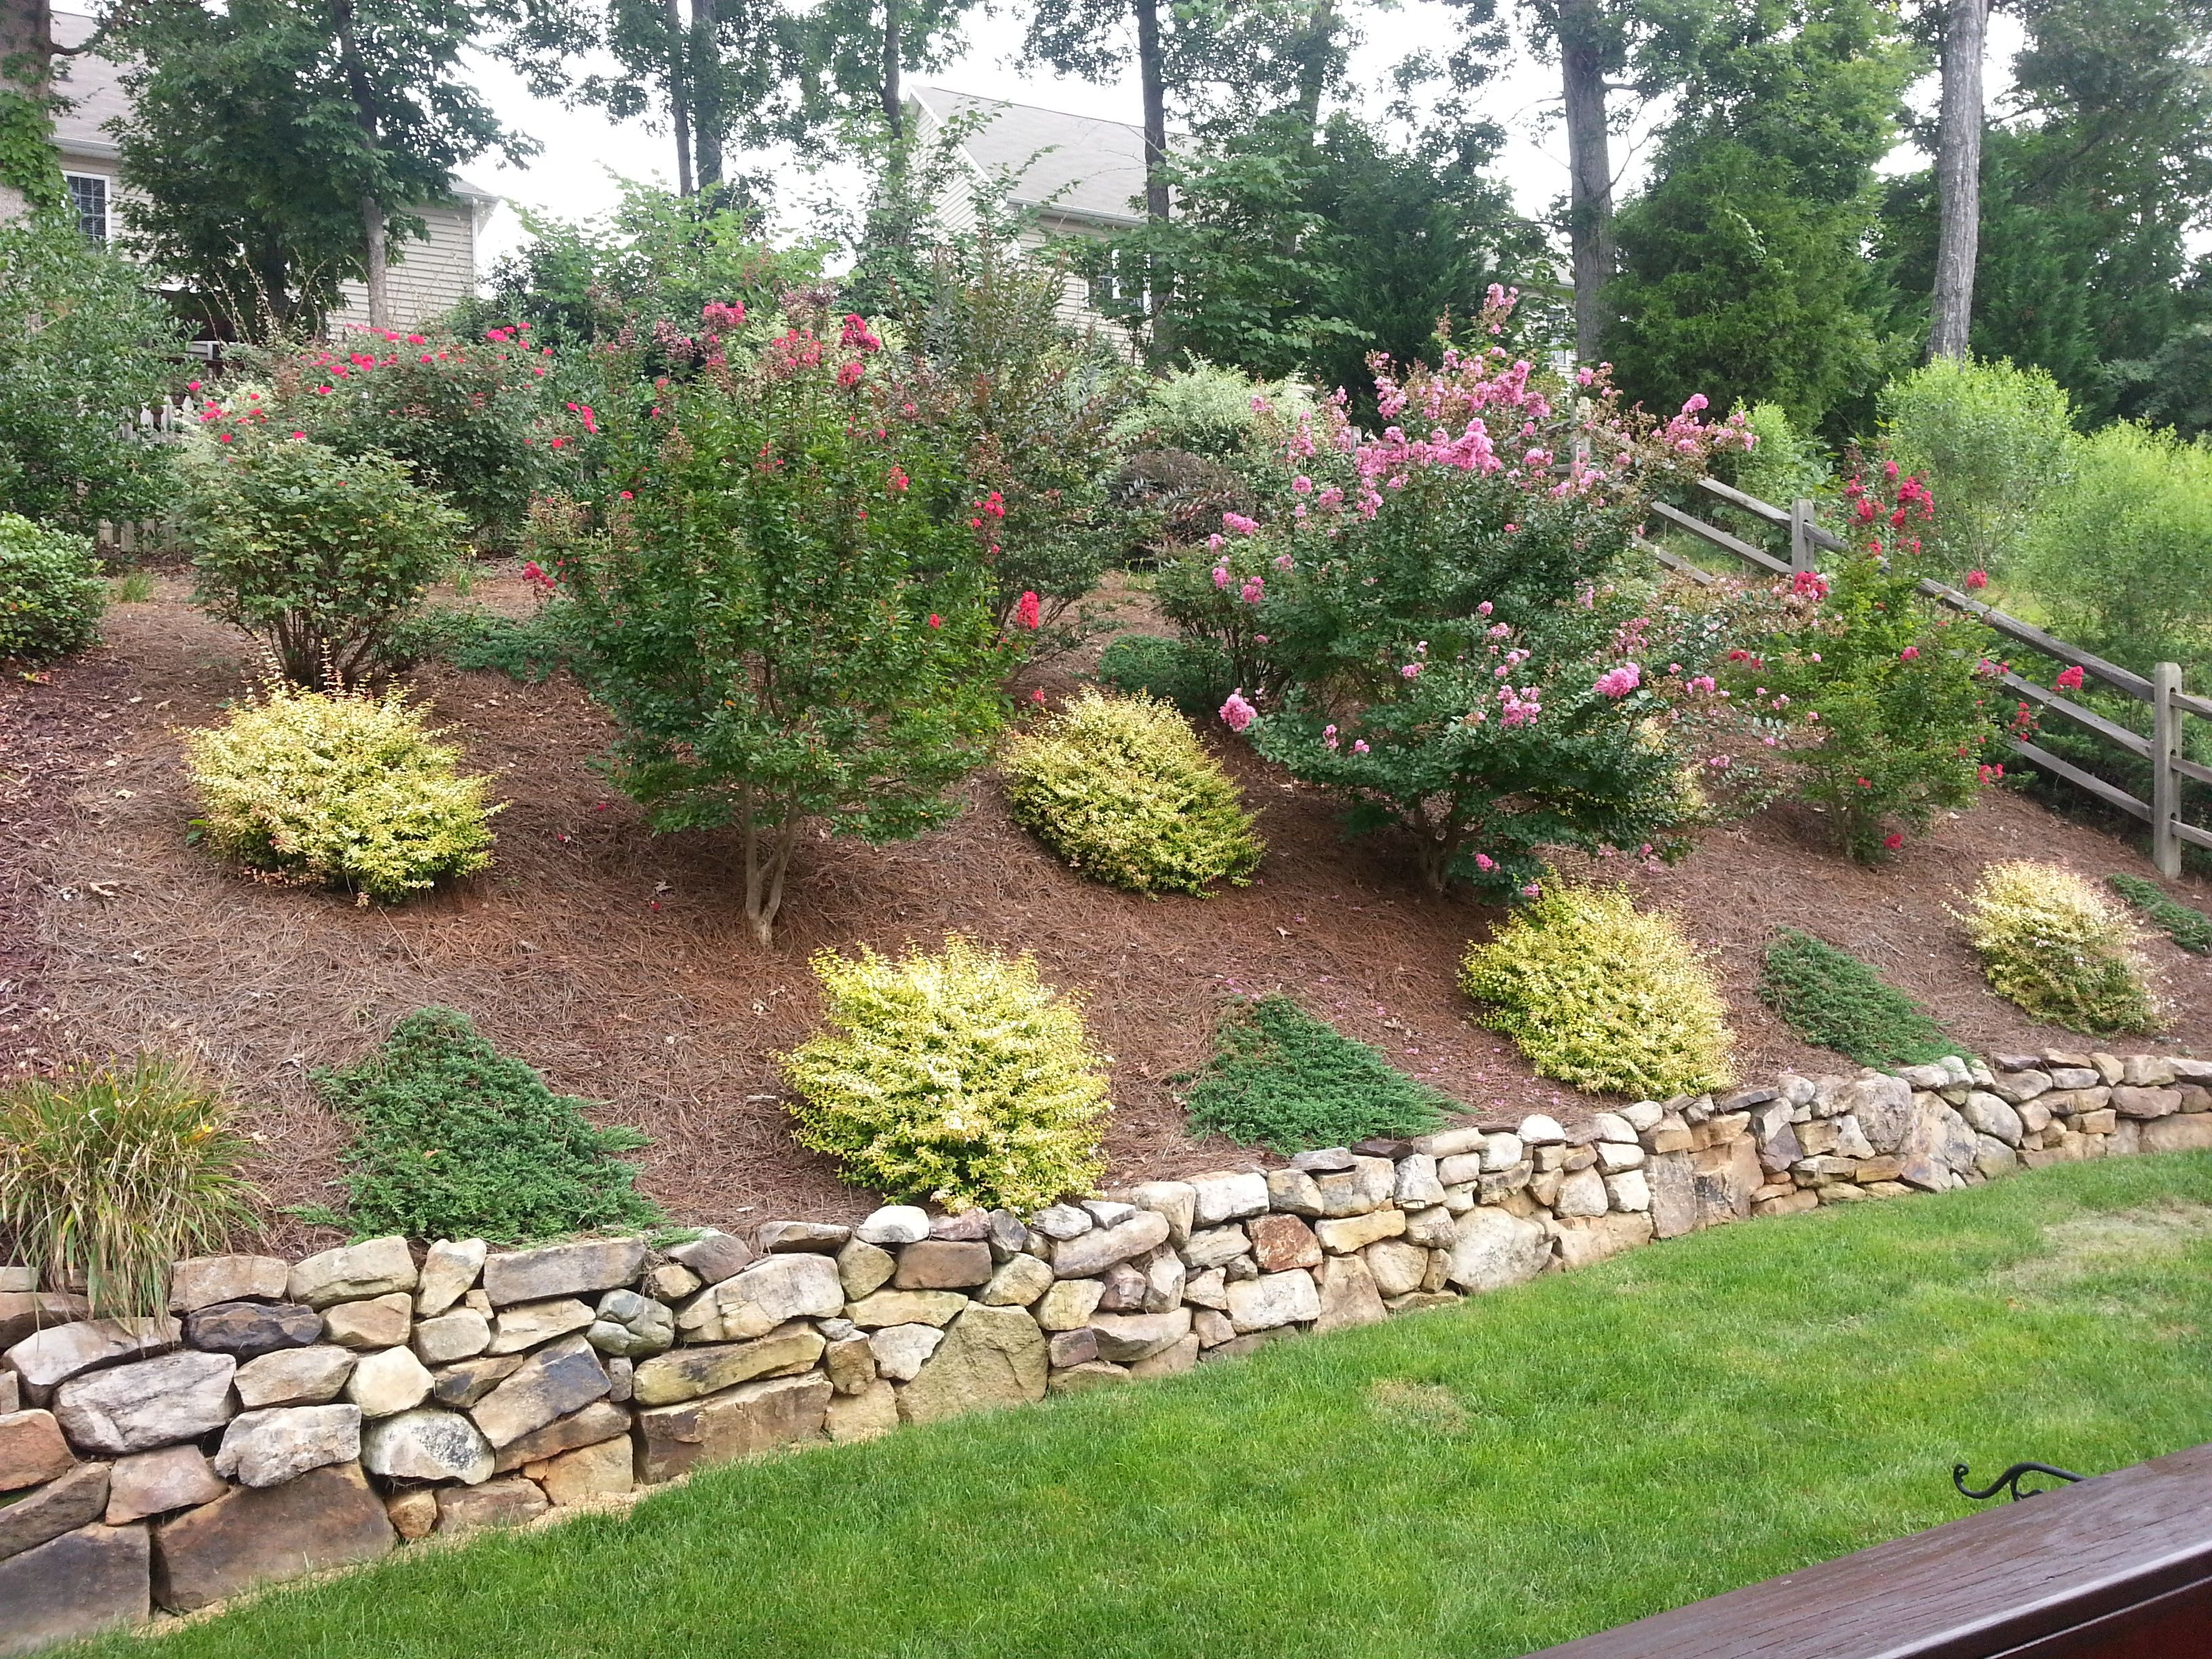 Beautifully Landscaped Backyard Backyard Hill Landscaping Backyard Landscaping Designs Hillside Landscaping